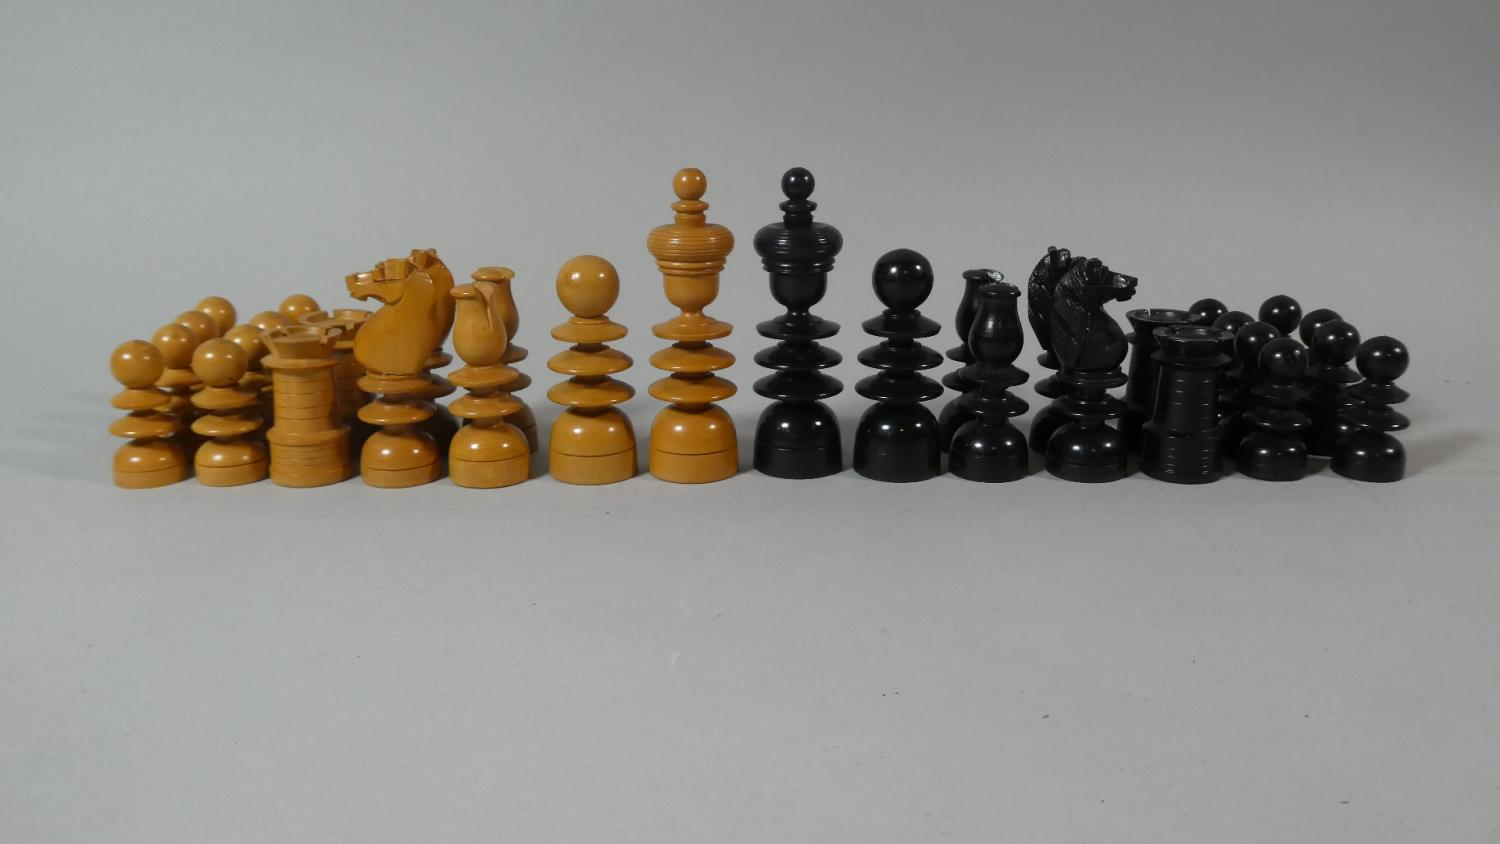 Lot 147 - A Complete Set of Turned and Carved Wooden Staunton Chess Pieces, King 10cm High